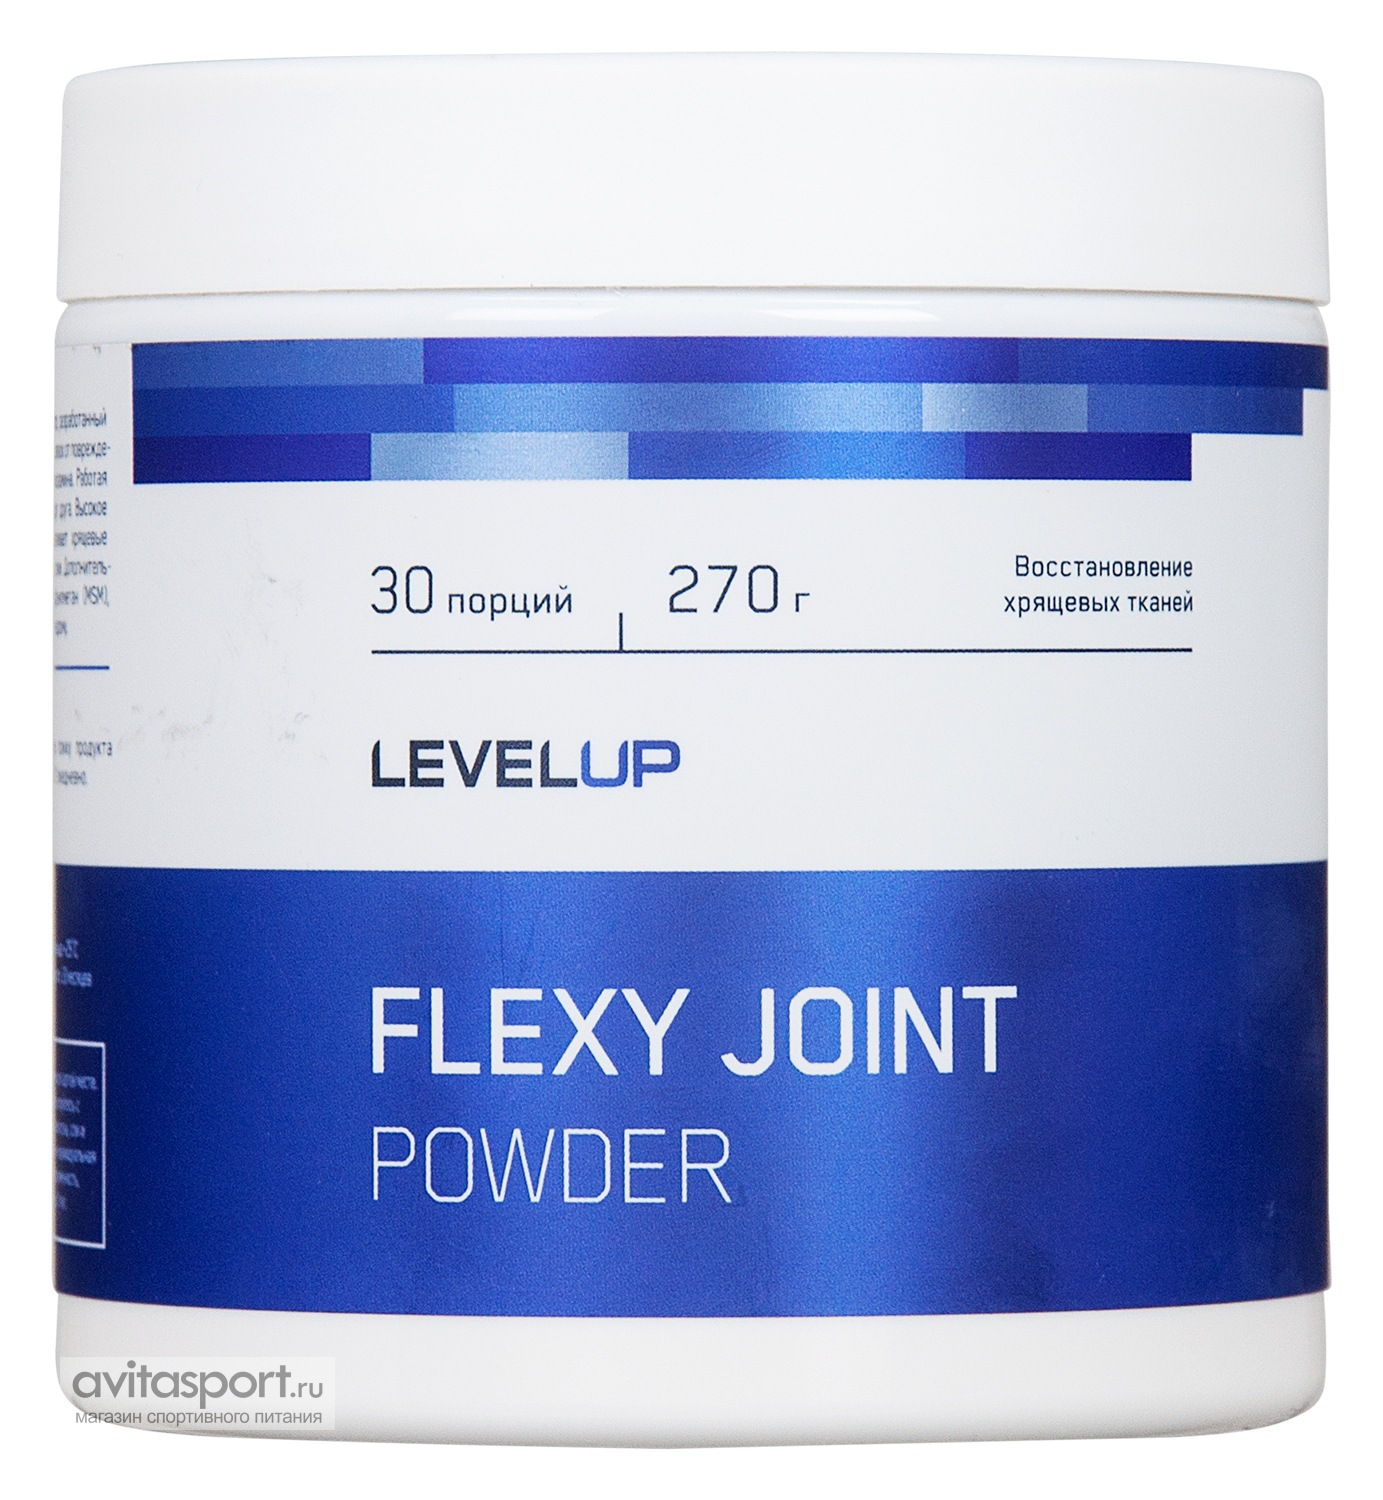 LevelUp Flexy Joint Powder 270 г